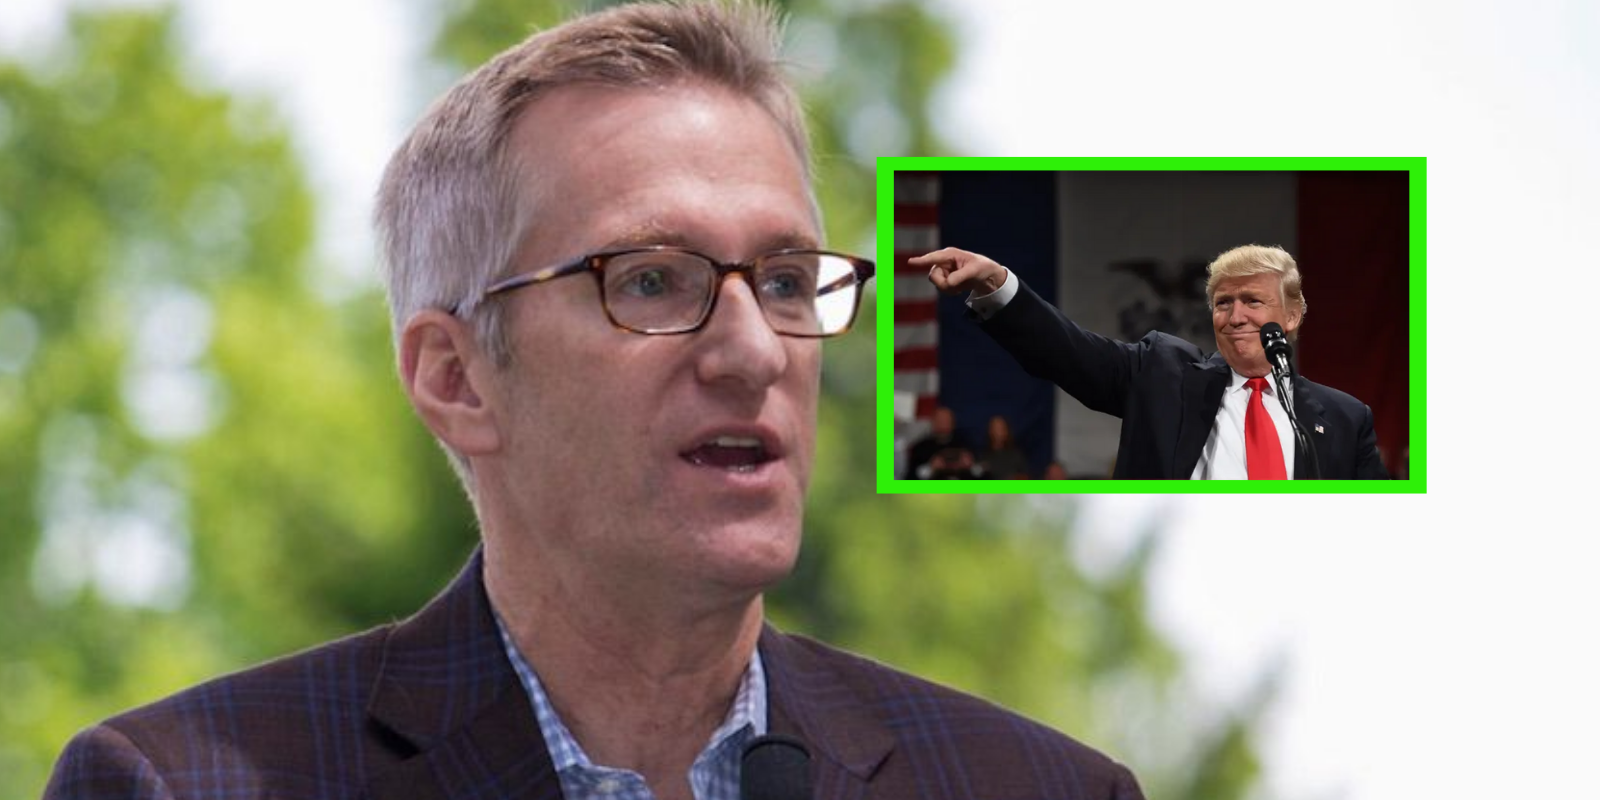 Trump once again tries to stop violent rioting in Portland as mayor pretends it's not happening